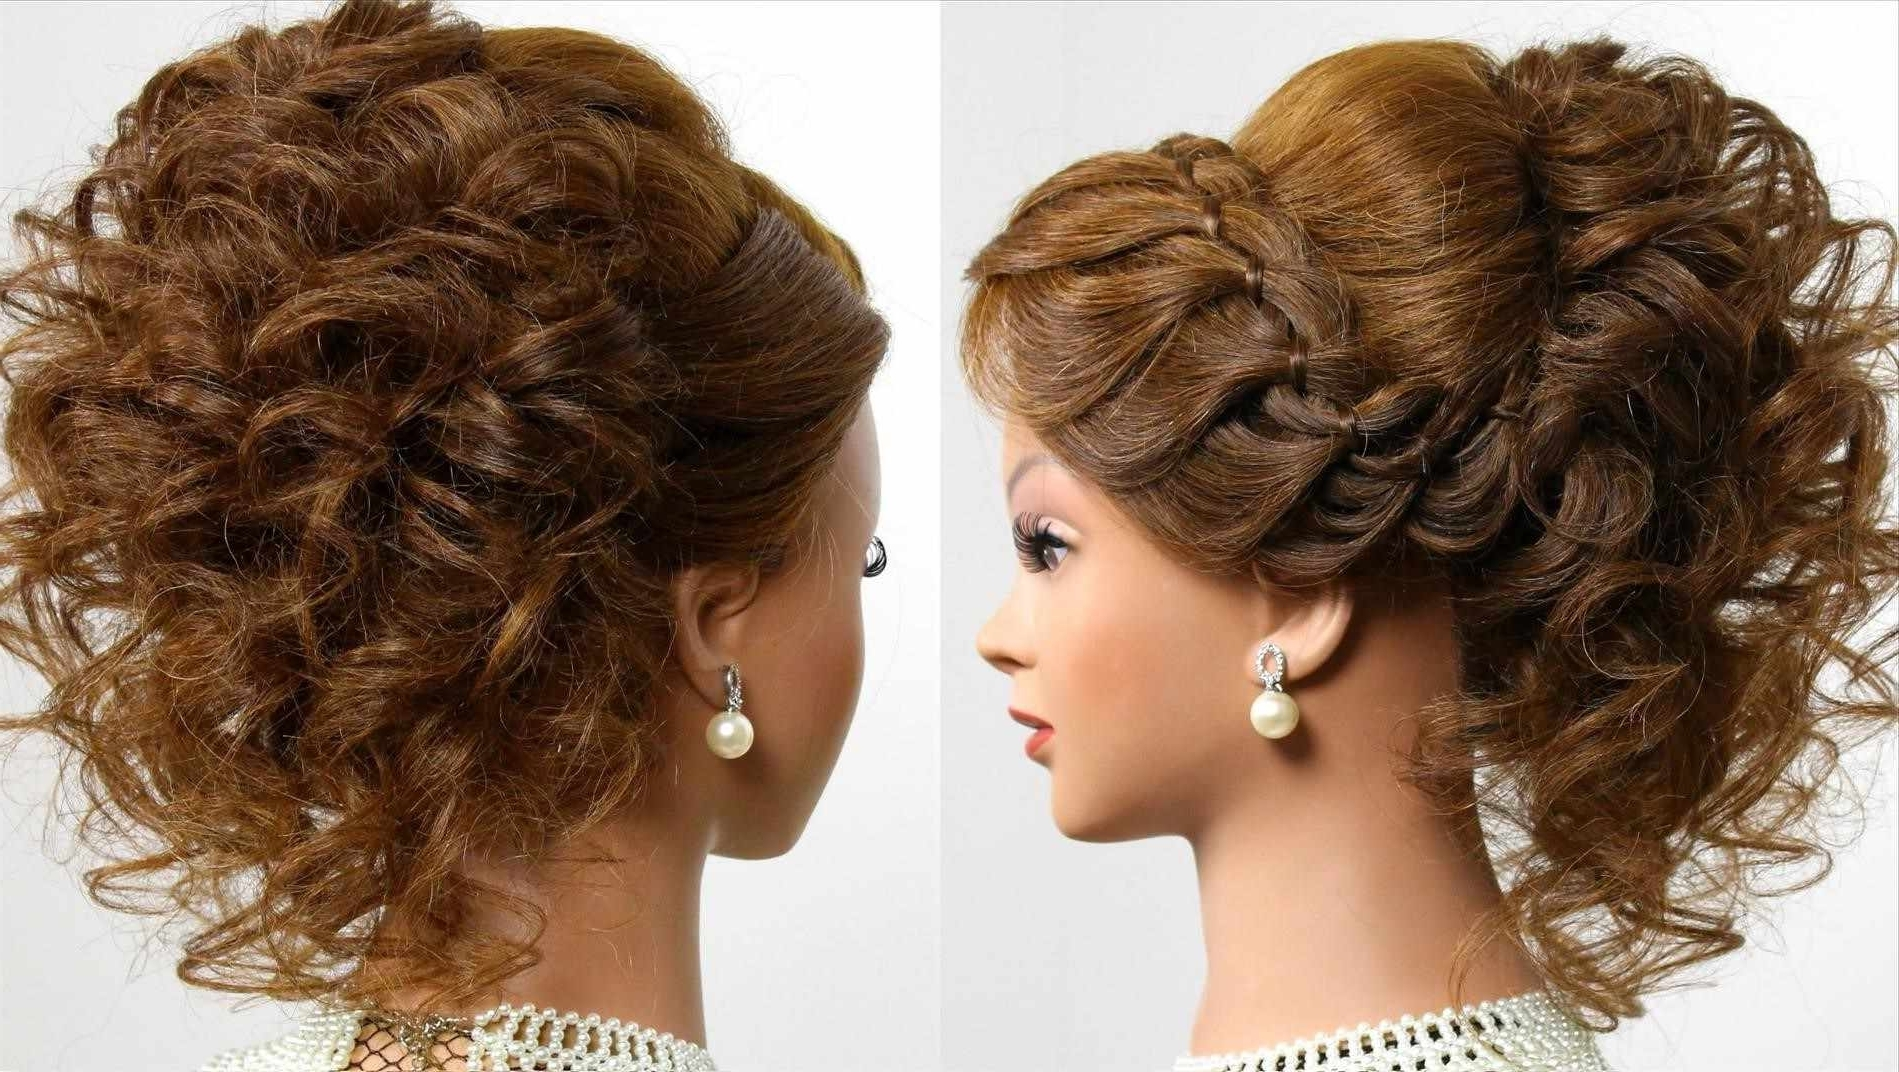 Hairstyles Medium Length Hairstyles Updos For Formal Updos Medium With Regard To Updos For Medium Length Curly Hair (View 6 of 15)